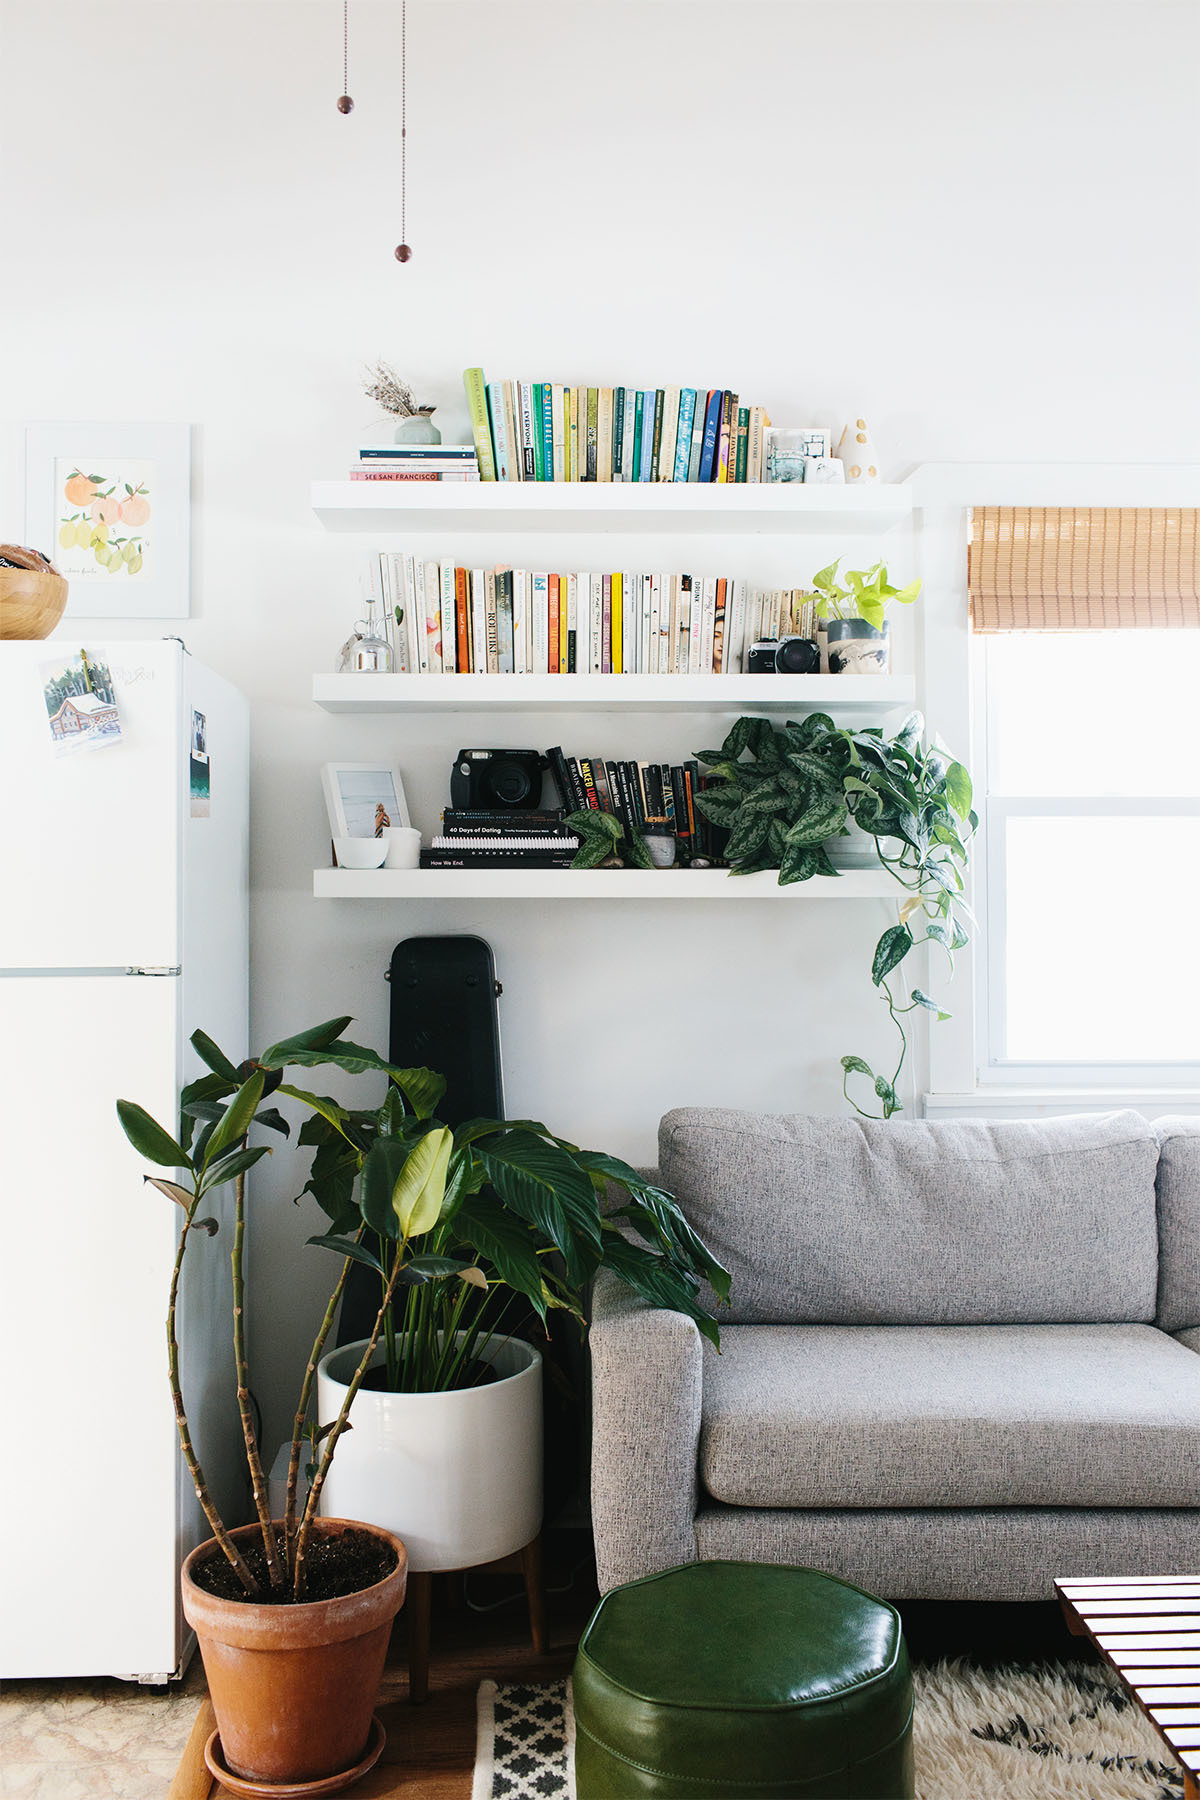 Stier added IKEA shelves and filled her tiny cottage with house plants, to give her home a cozy, restorative vibe. IKEA Shelves | West Elm Sofa | Vintage Ottoman | Wilson Antiques Coffee Table | West Elm Rug | Darling Botanical Co. Plants. | Vintage Accent Pieces.